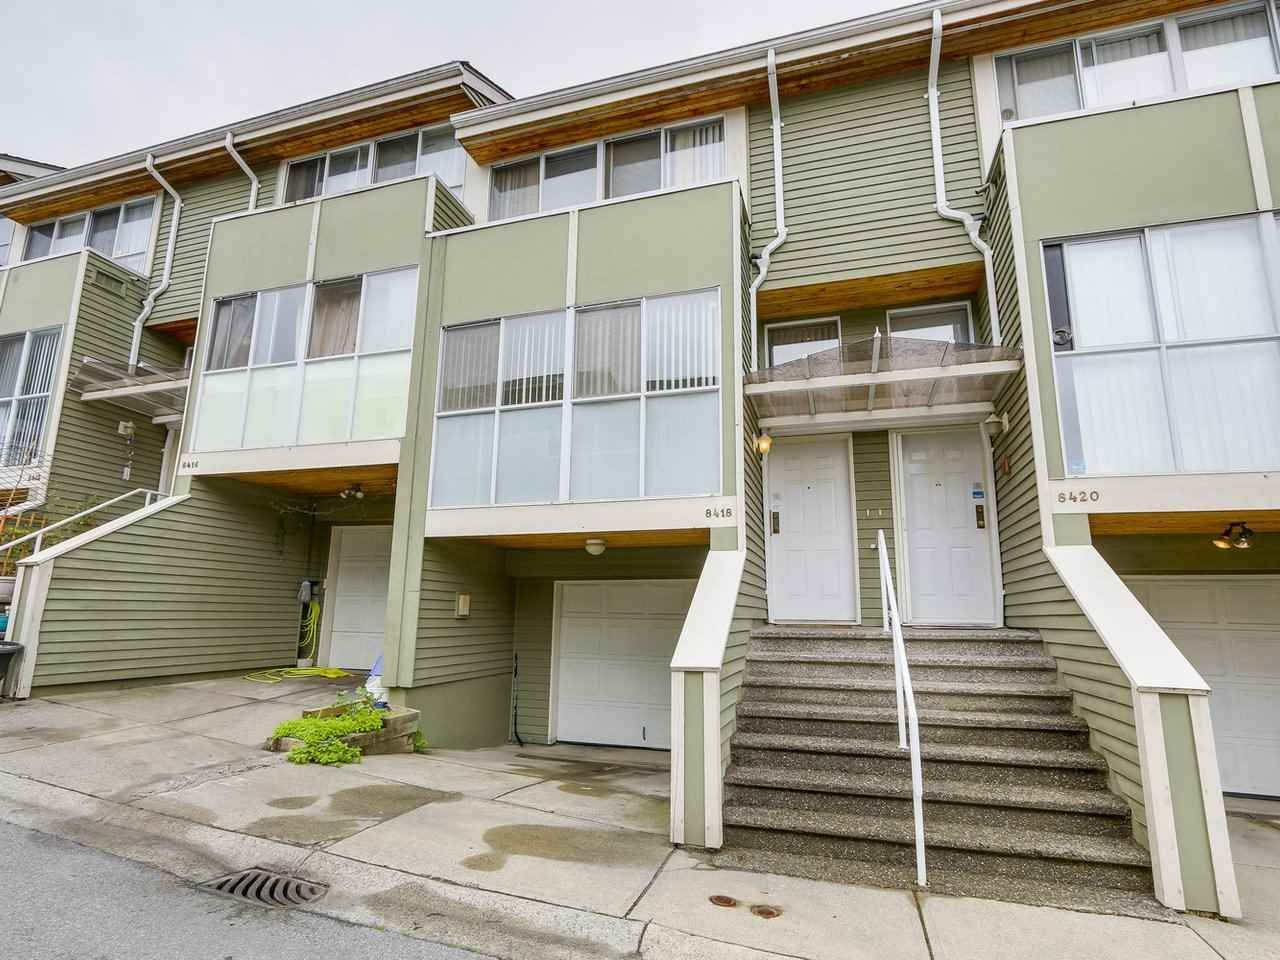 """Main Photo: 8418 CORNERSTONE Street in Vancouver: Champlain Heights Townhouse for sale in """"MARINE WOODS"""" (Vancouver East)  : MLS®# R2209751"""